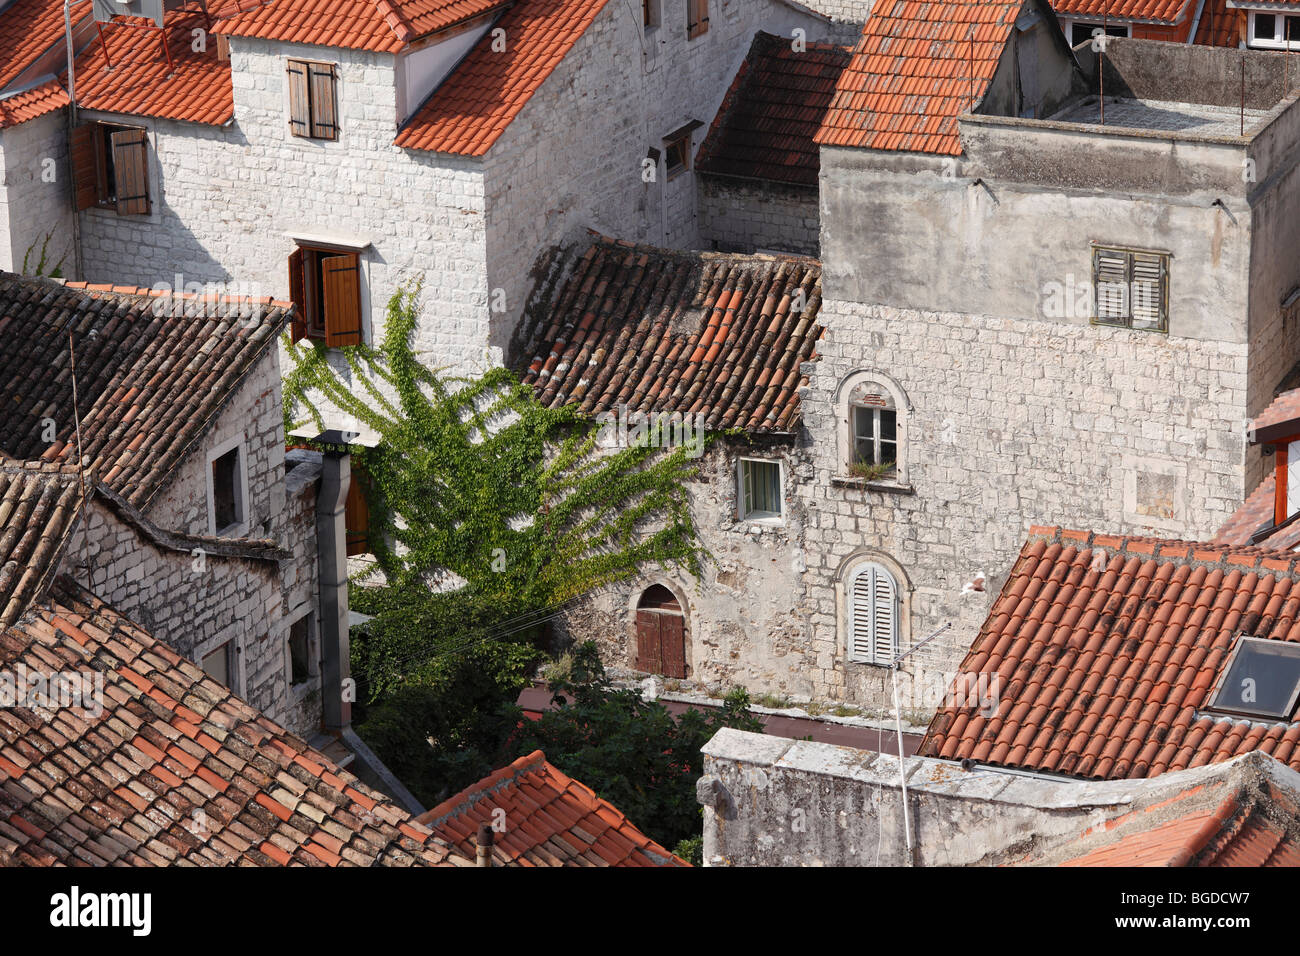 View from the spire of the cathedral, Trogir, Dalmatia, Croatia, Europe - Stock Image